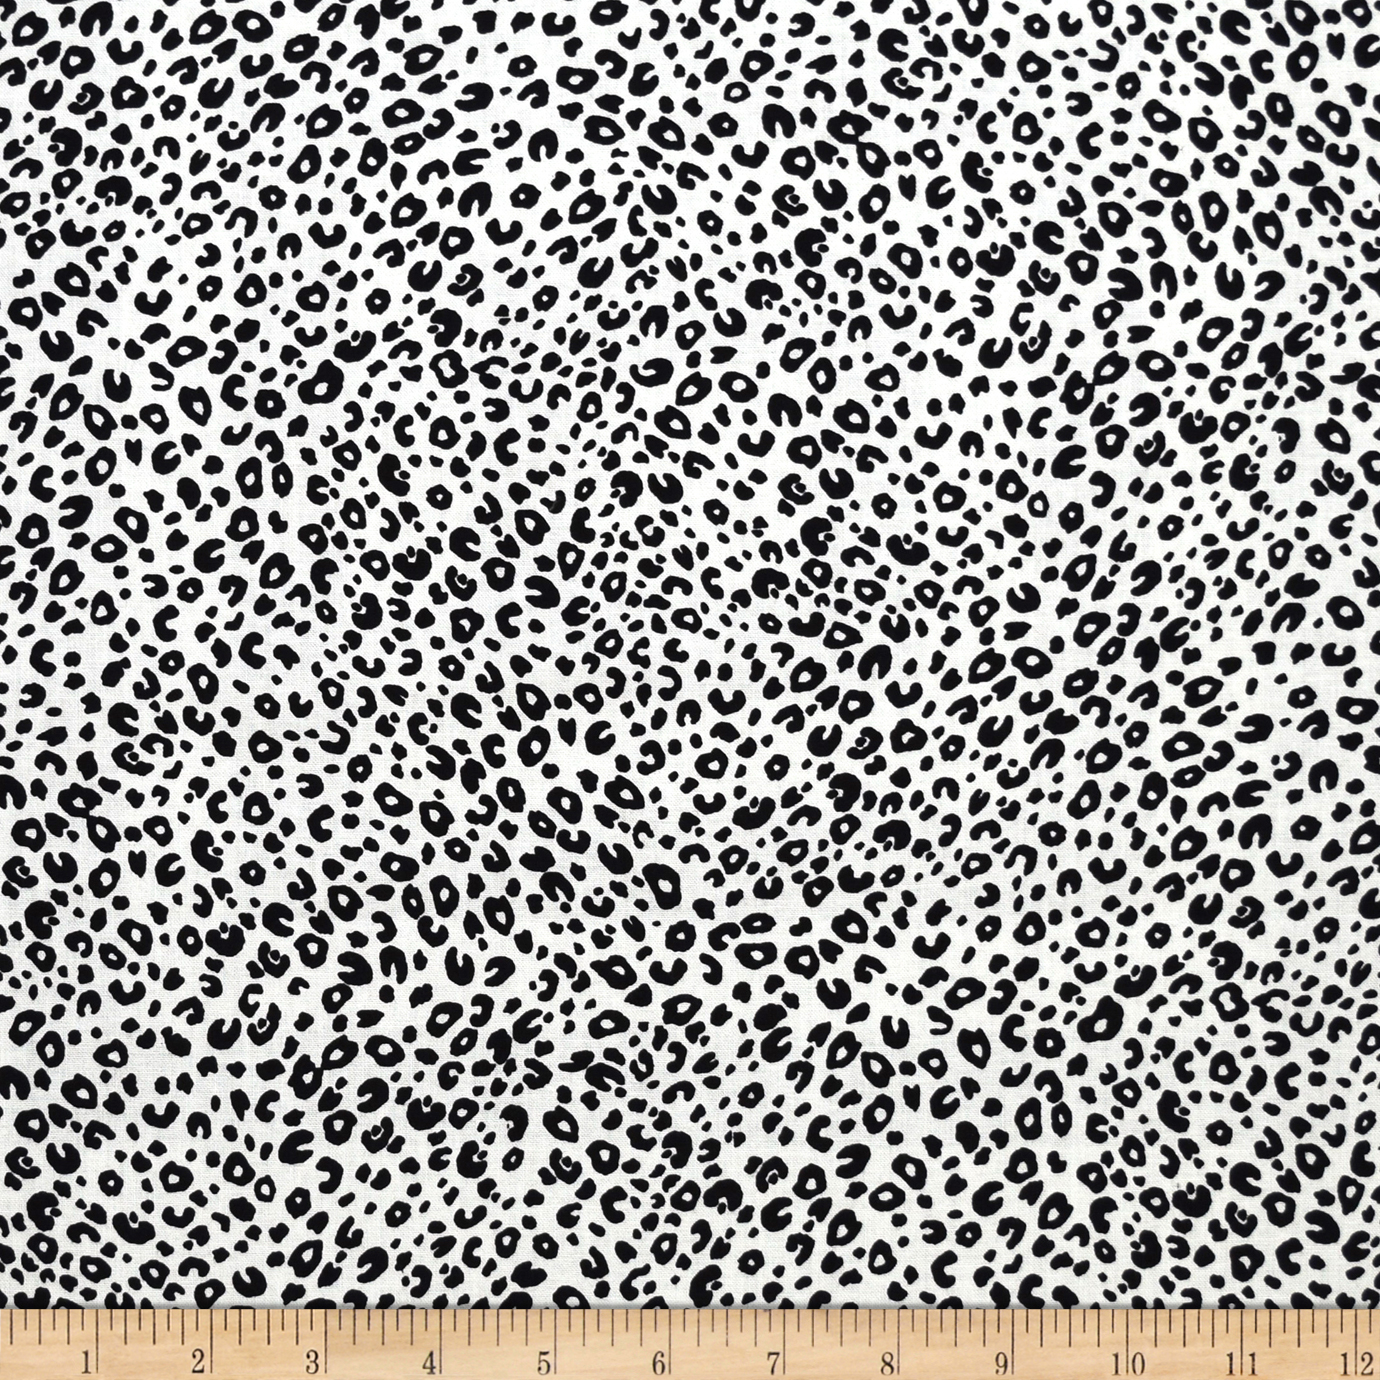 Fabric Follies Skin White/Black by Quilting Treasures in USA